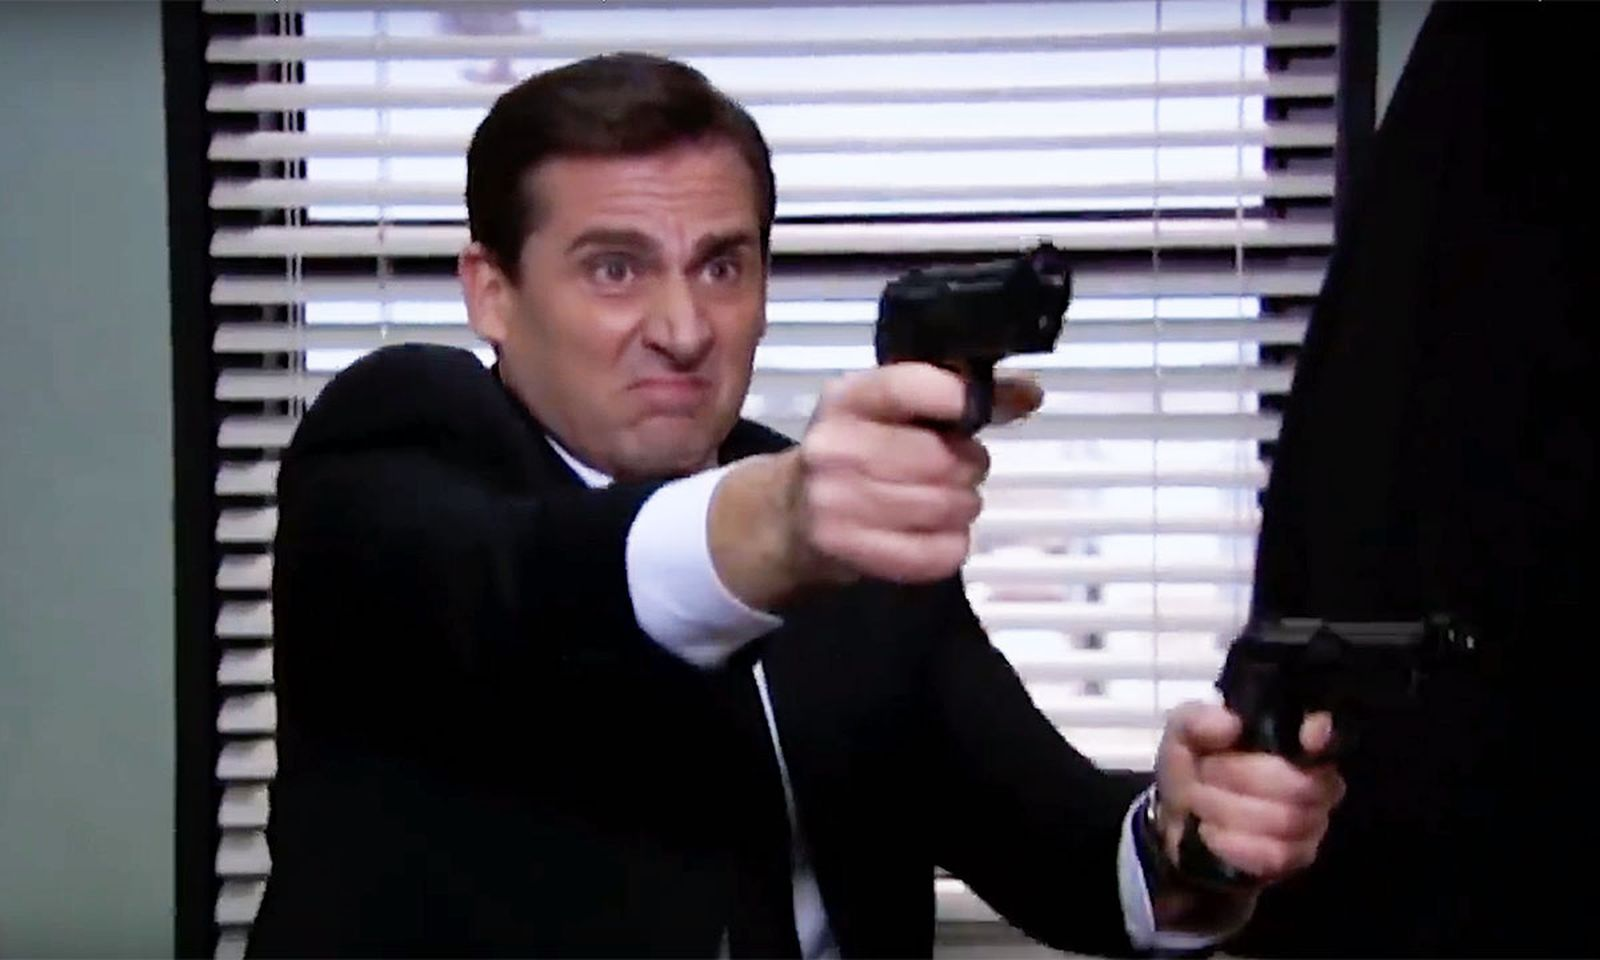 Steve Carrell in 'The Office' action film 'Threat Level Midnight'